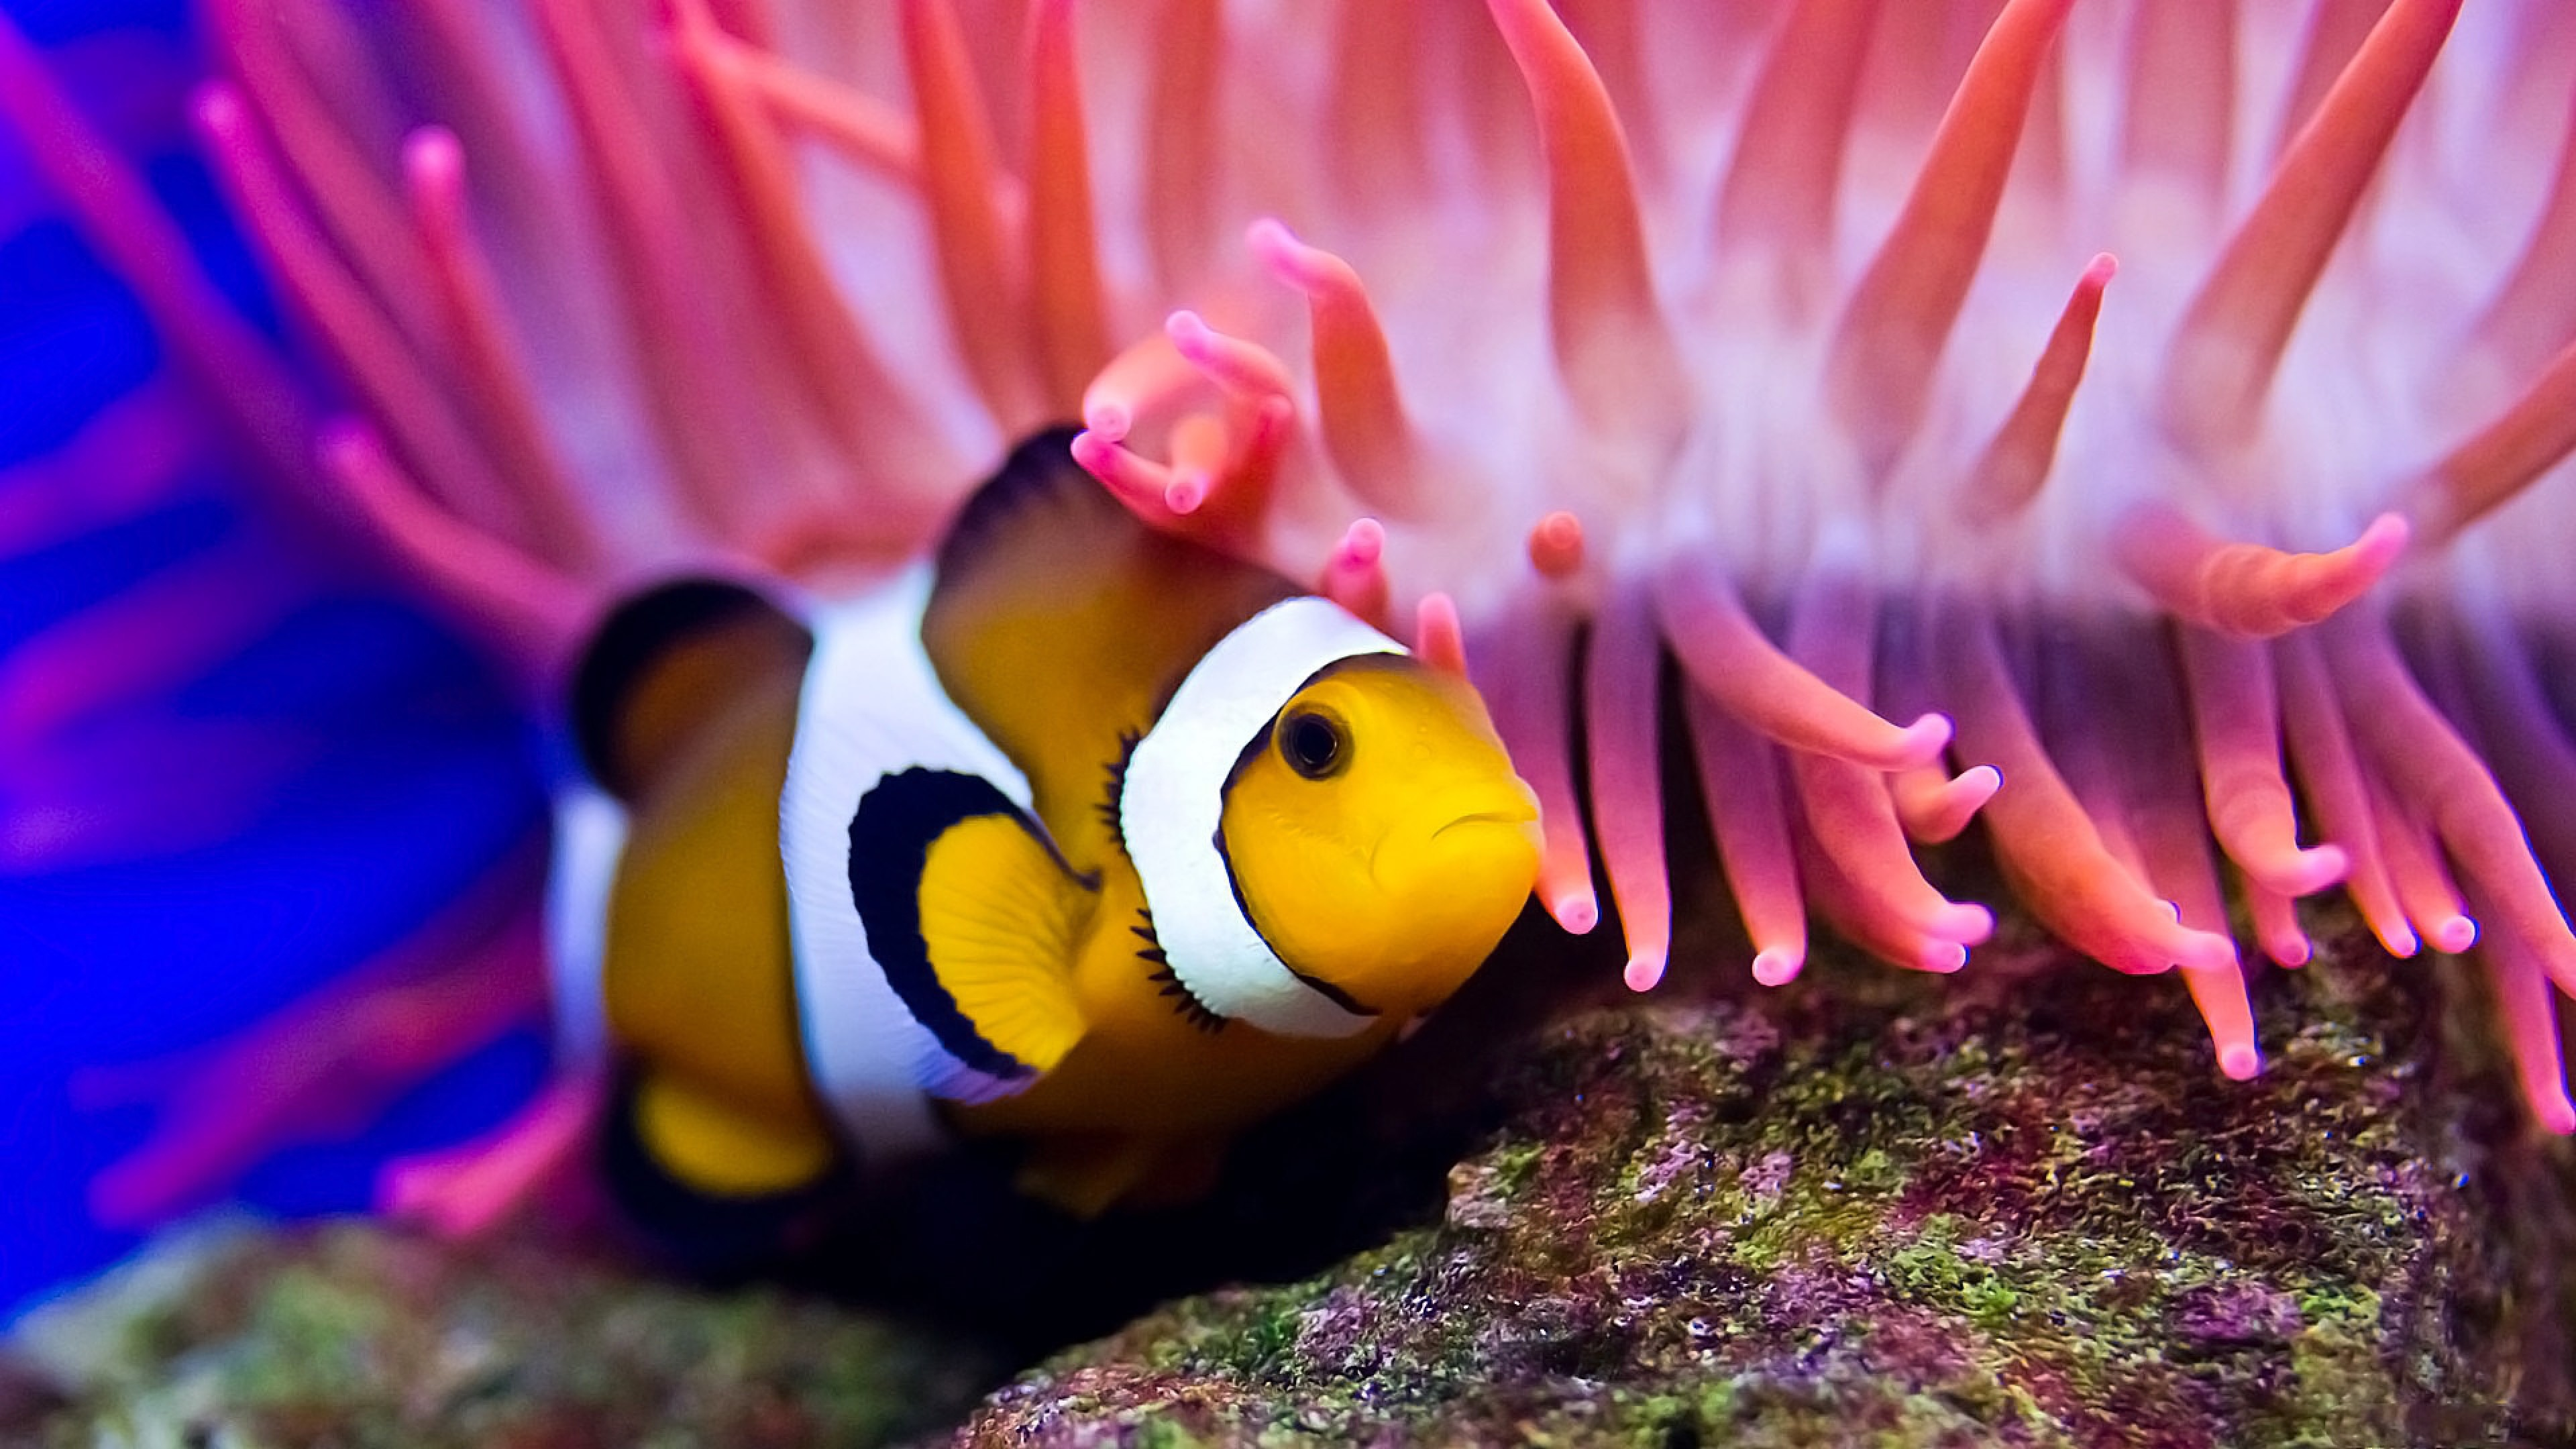 Apple Clownfish Wallpaper Iphone X Clown Fish Wallpaper 183 ①